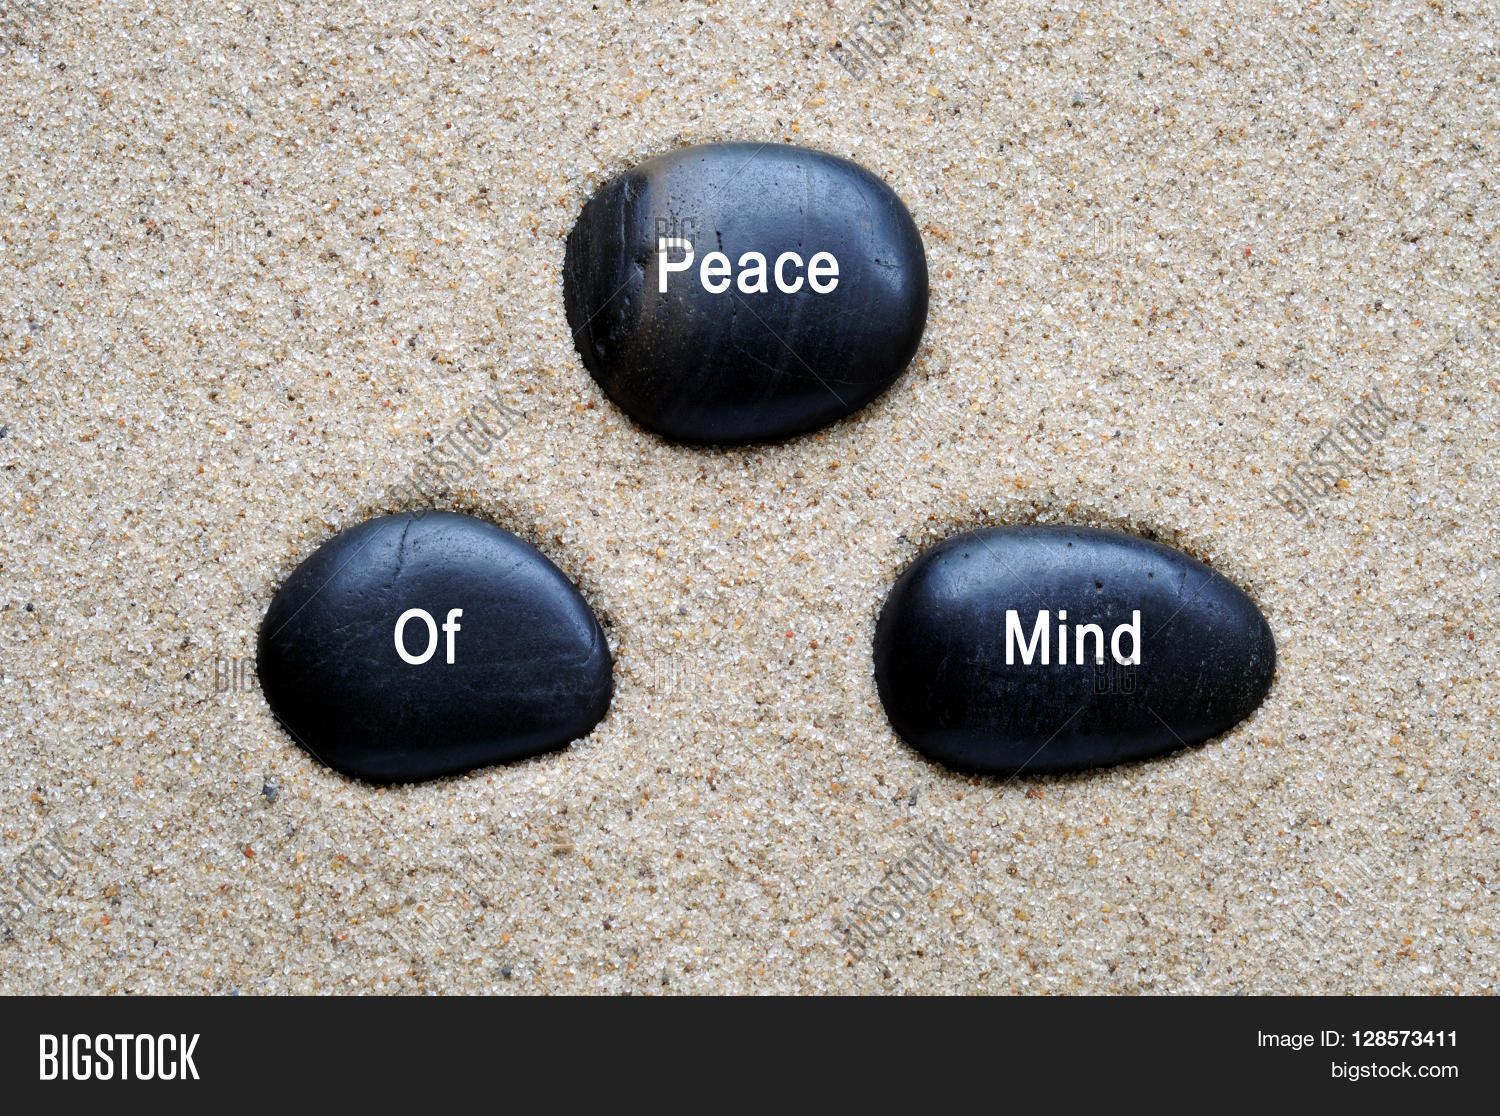 Peace Of Mind Quotes   Peace Mind Quotes On Image Photo Free Trial Bigstock